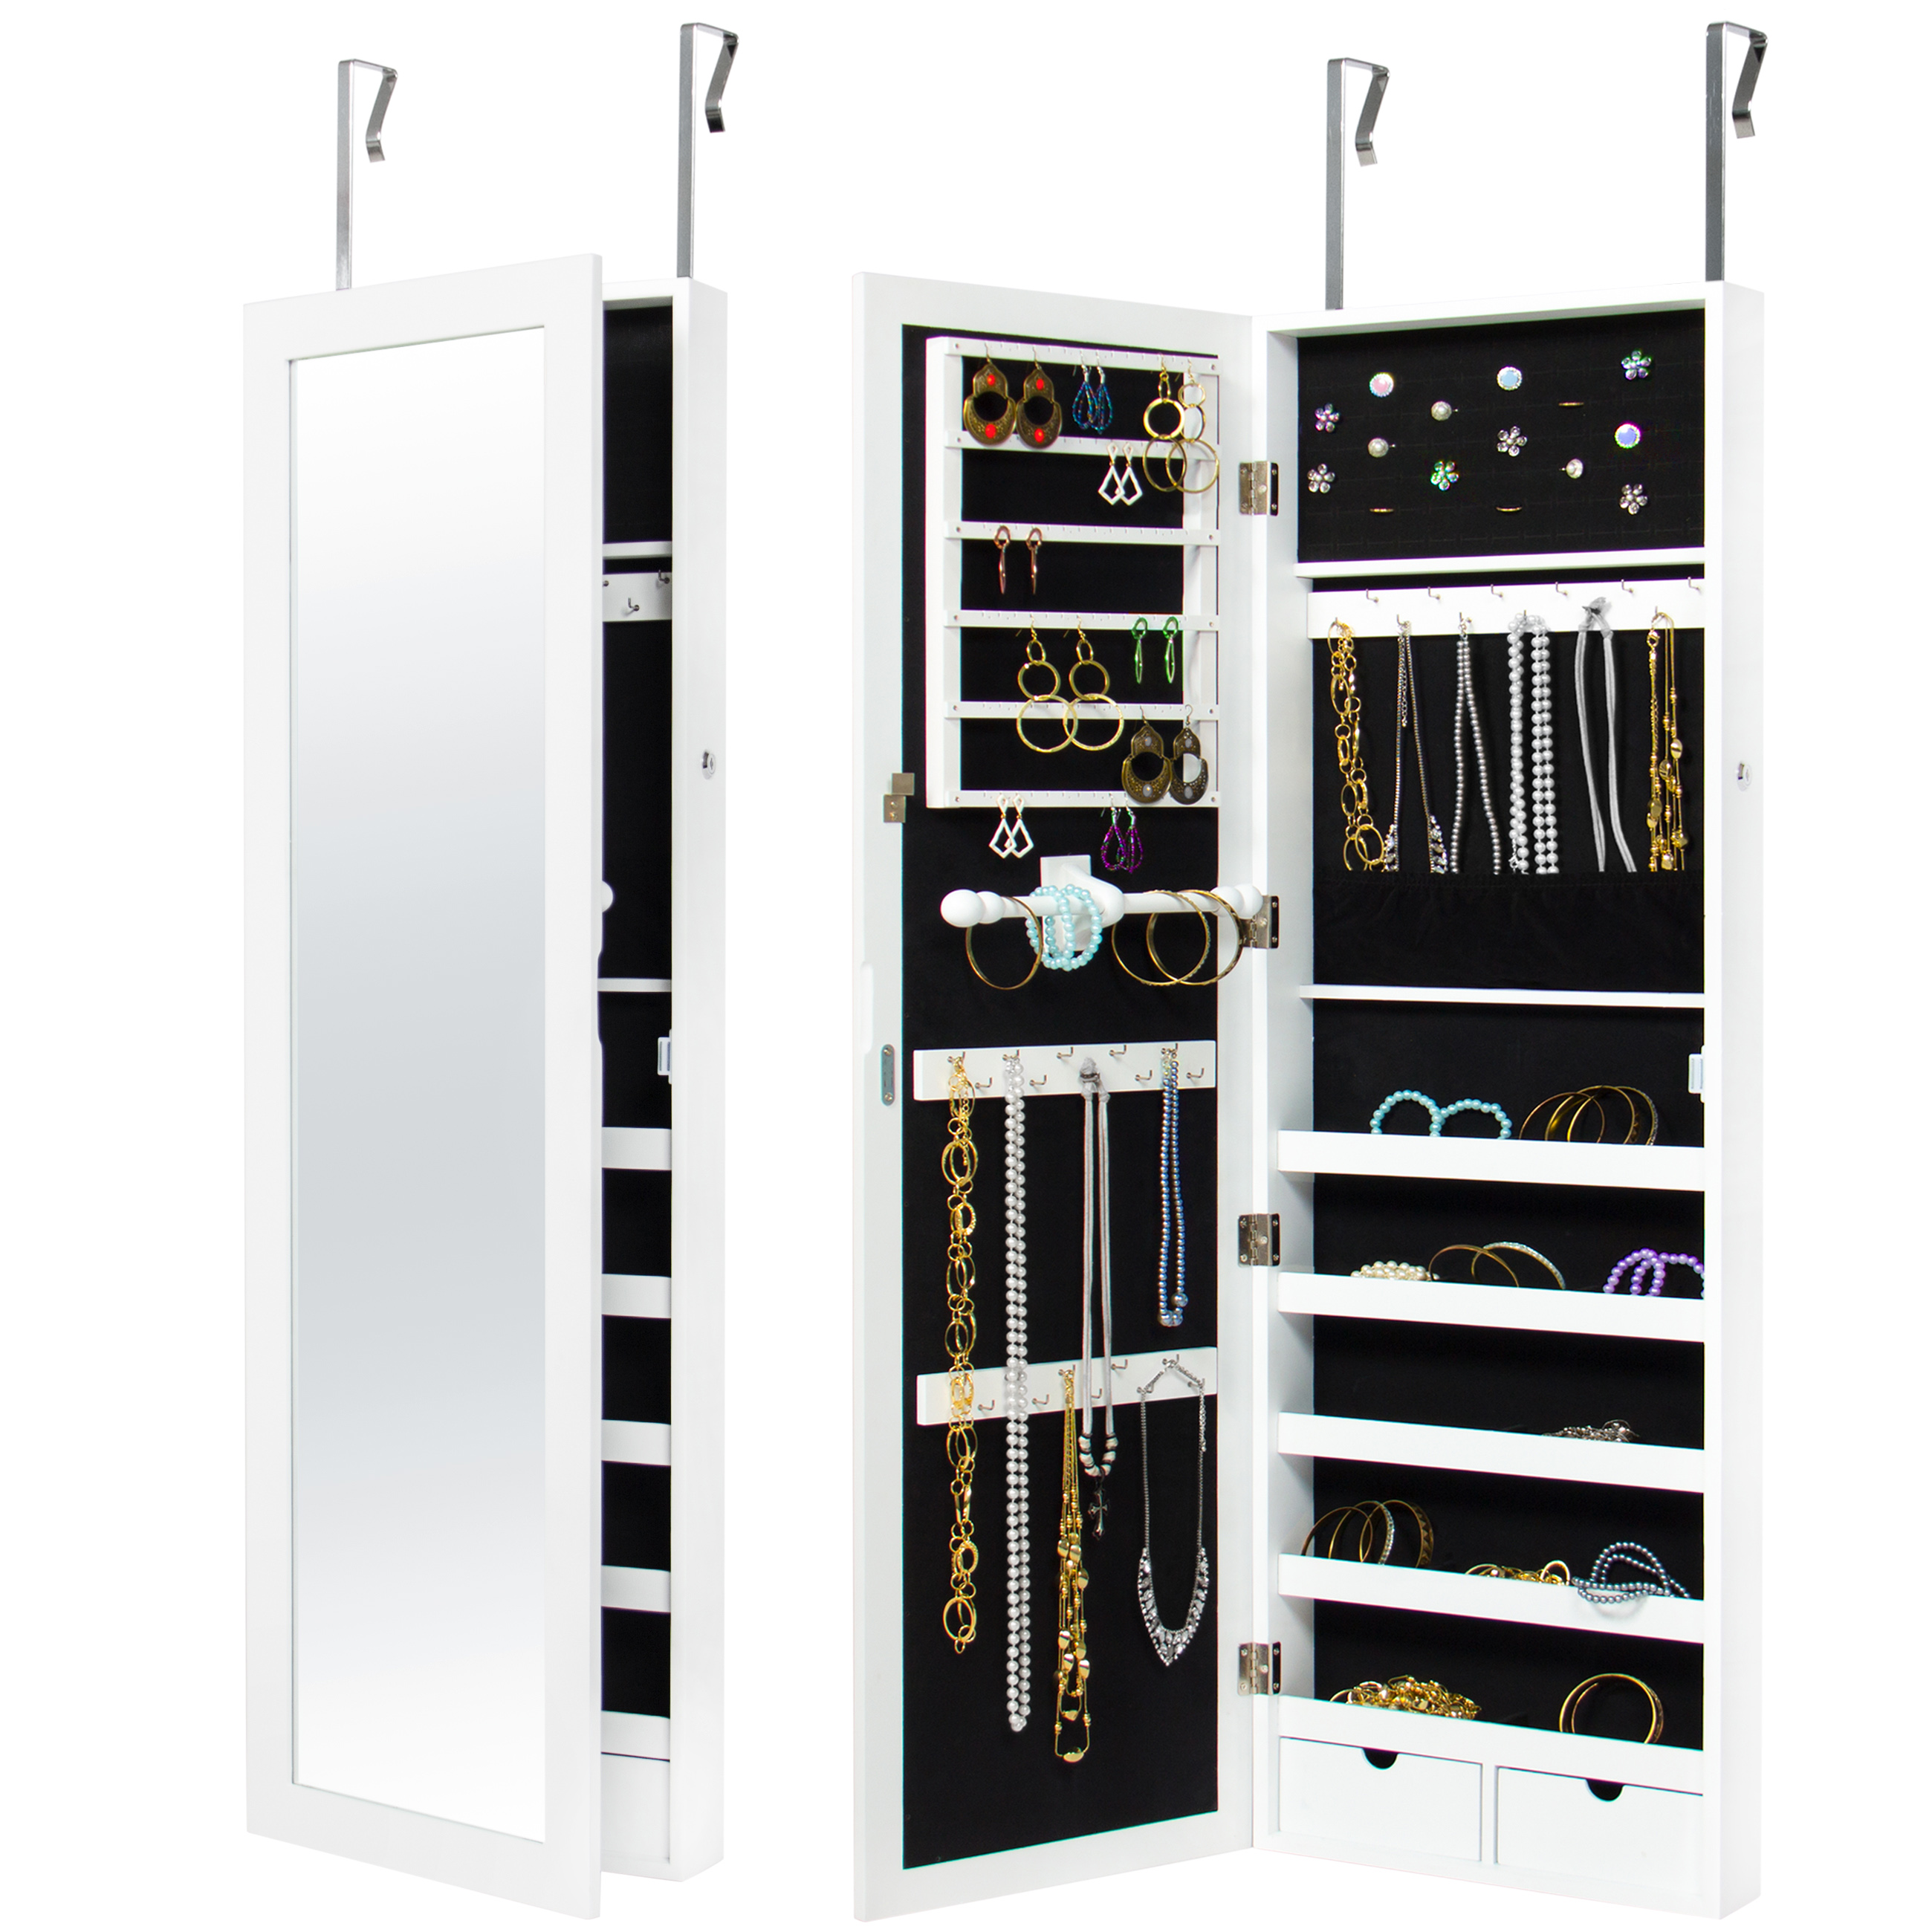 Best Choice Products Mirrored Hanging Jewelry Cabinet Armoire Organizer Over Door Wall Mount W/ Keys- White